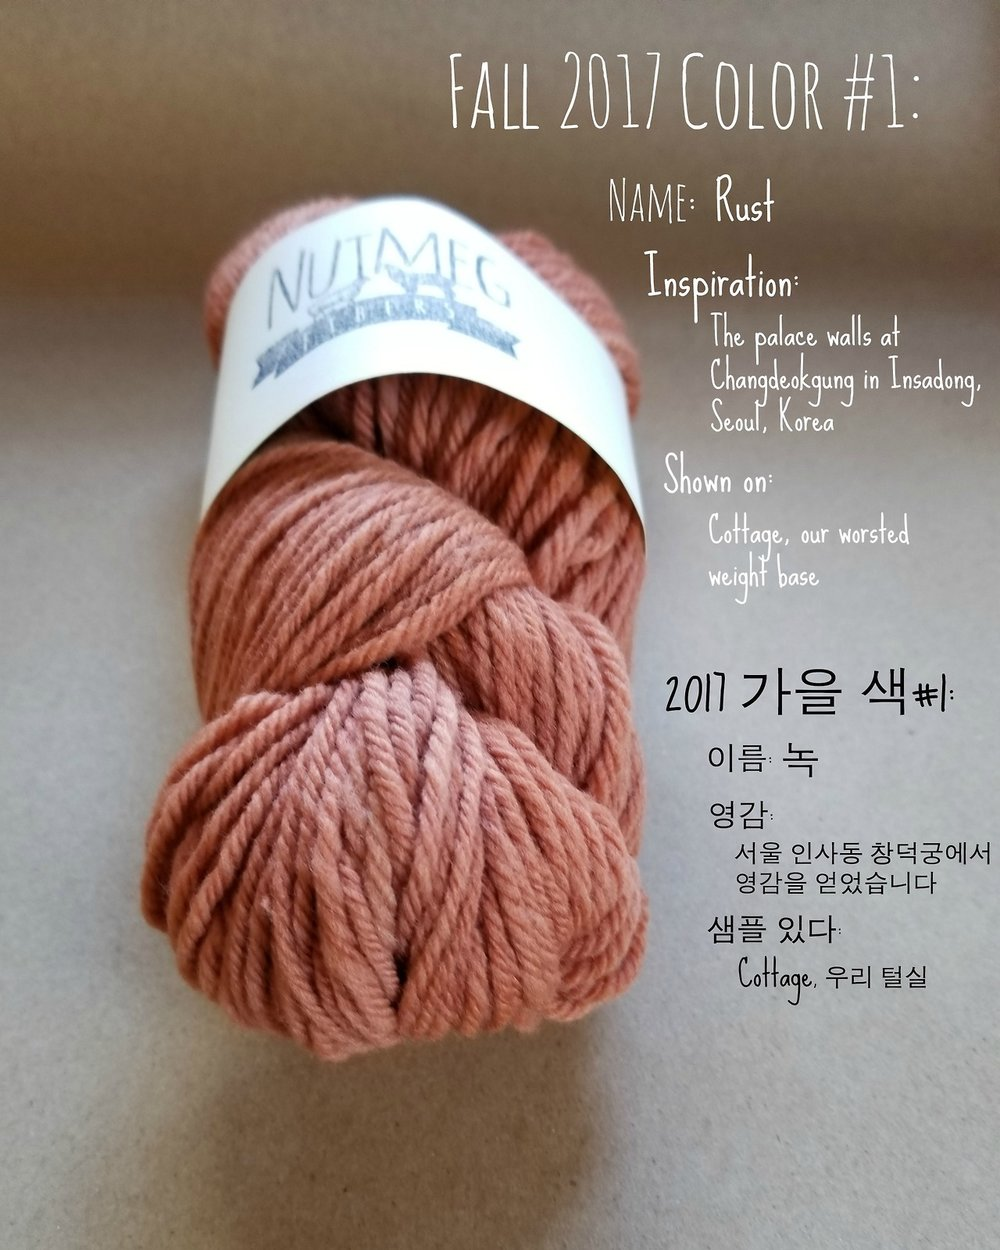 Say hello to new colorway #1 for this fall, Rust (녹)!